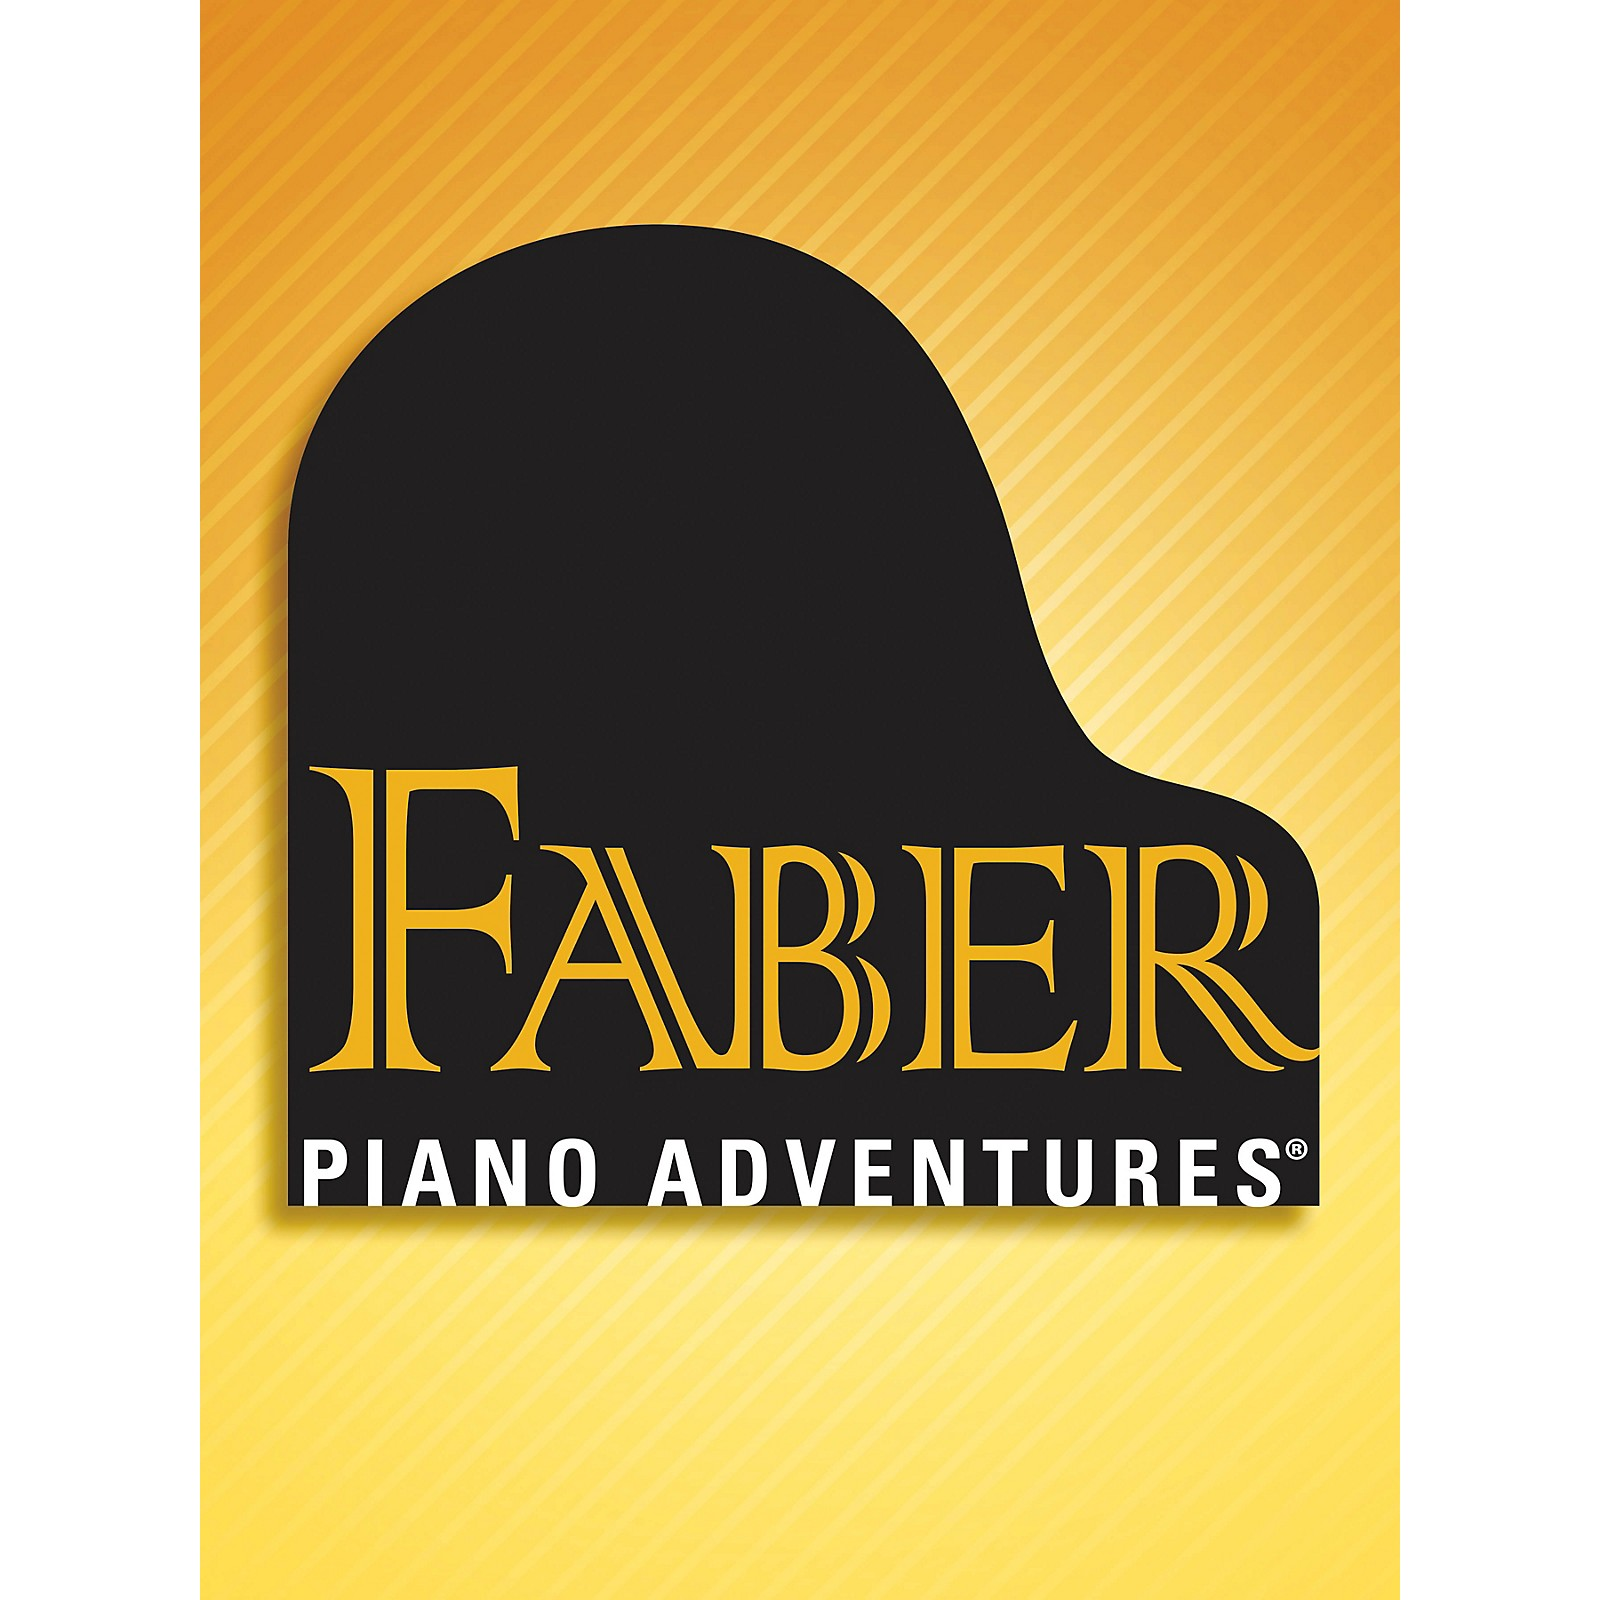 Faber Piano Adventures Primer Level - Popular Repertoire CD (Piano Adventures) Faber Piano Adventures Series CD by Nancy Faber